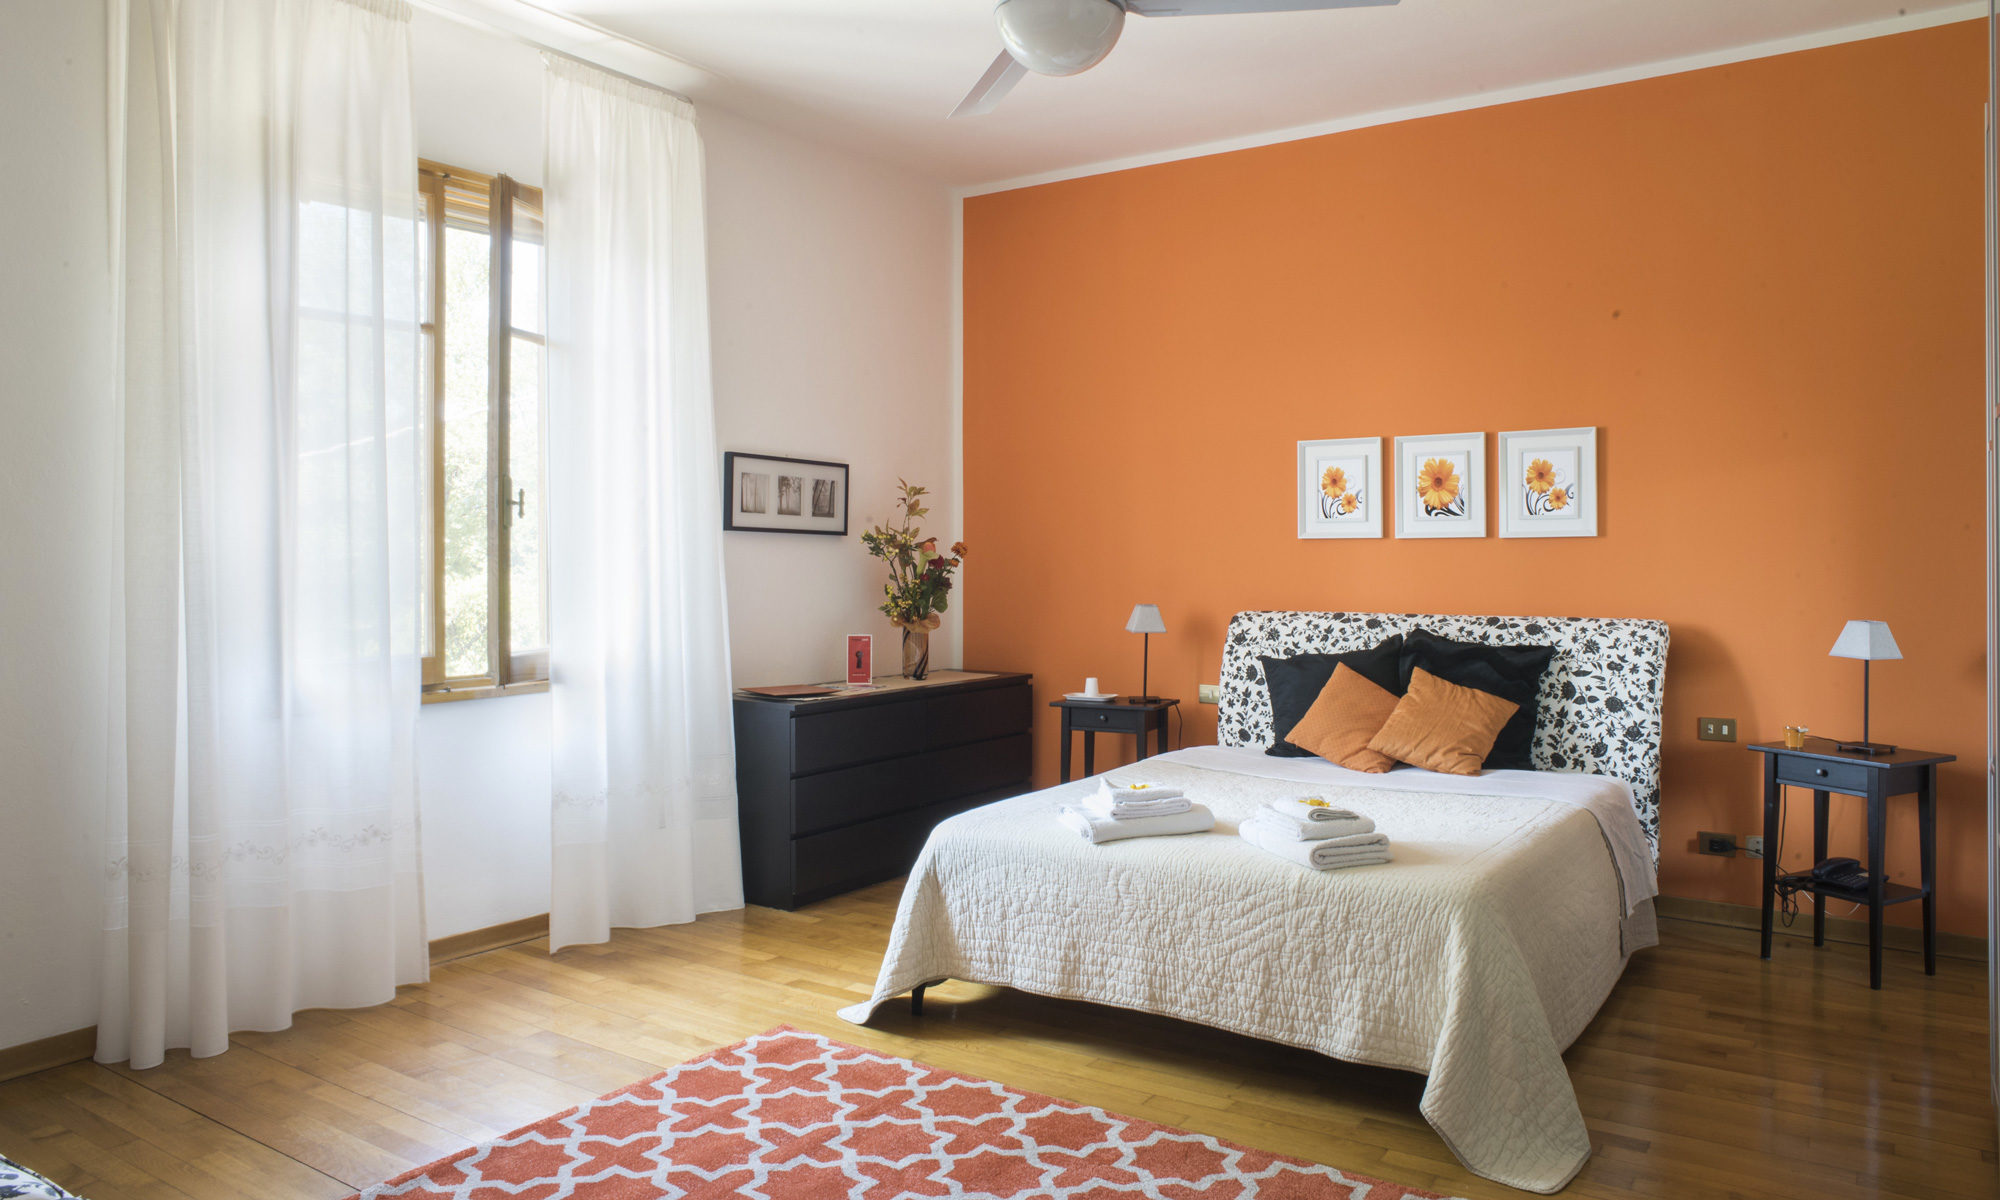 B&B Due Abeti Firenze